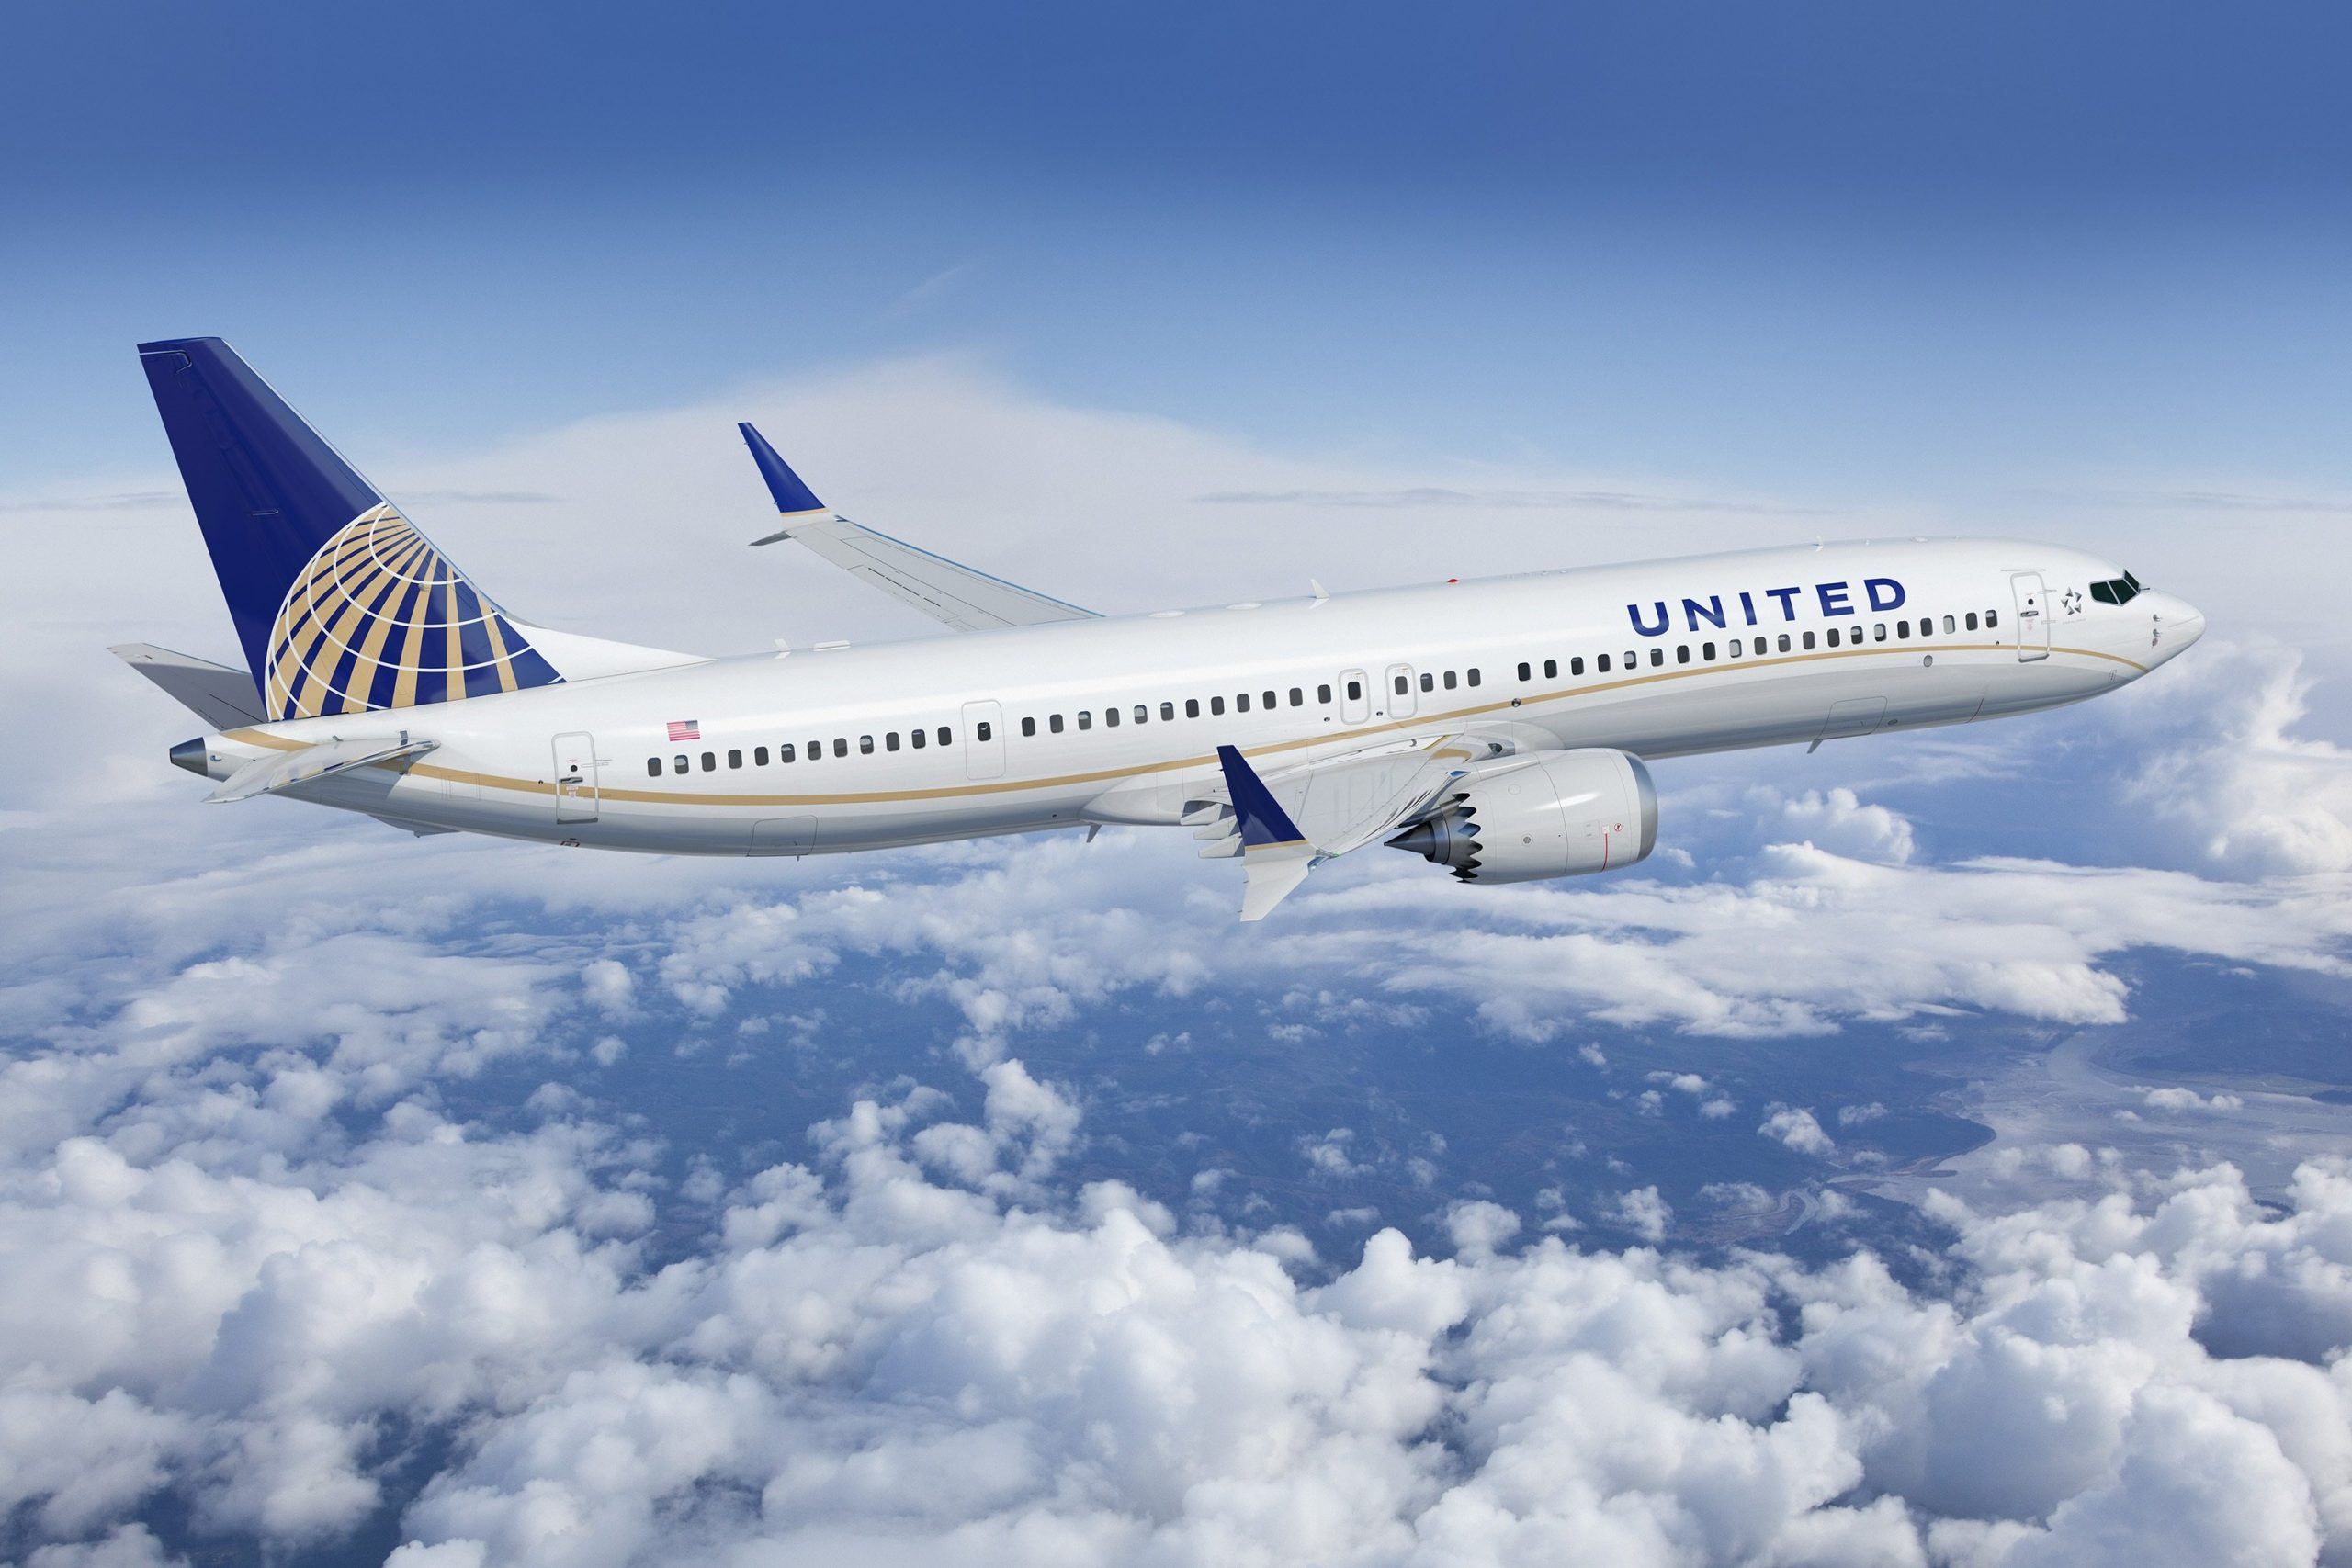 United Airlines Aircraft - Credit United Airlines